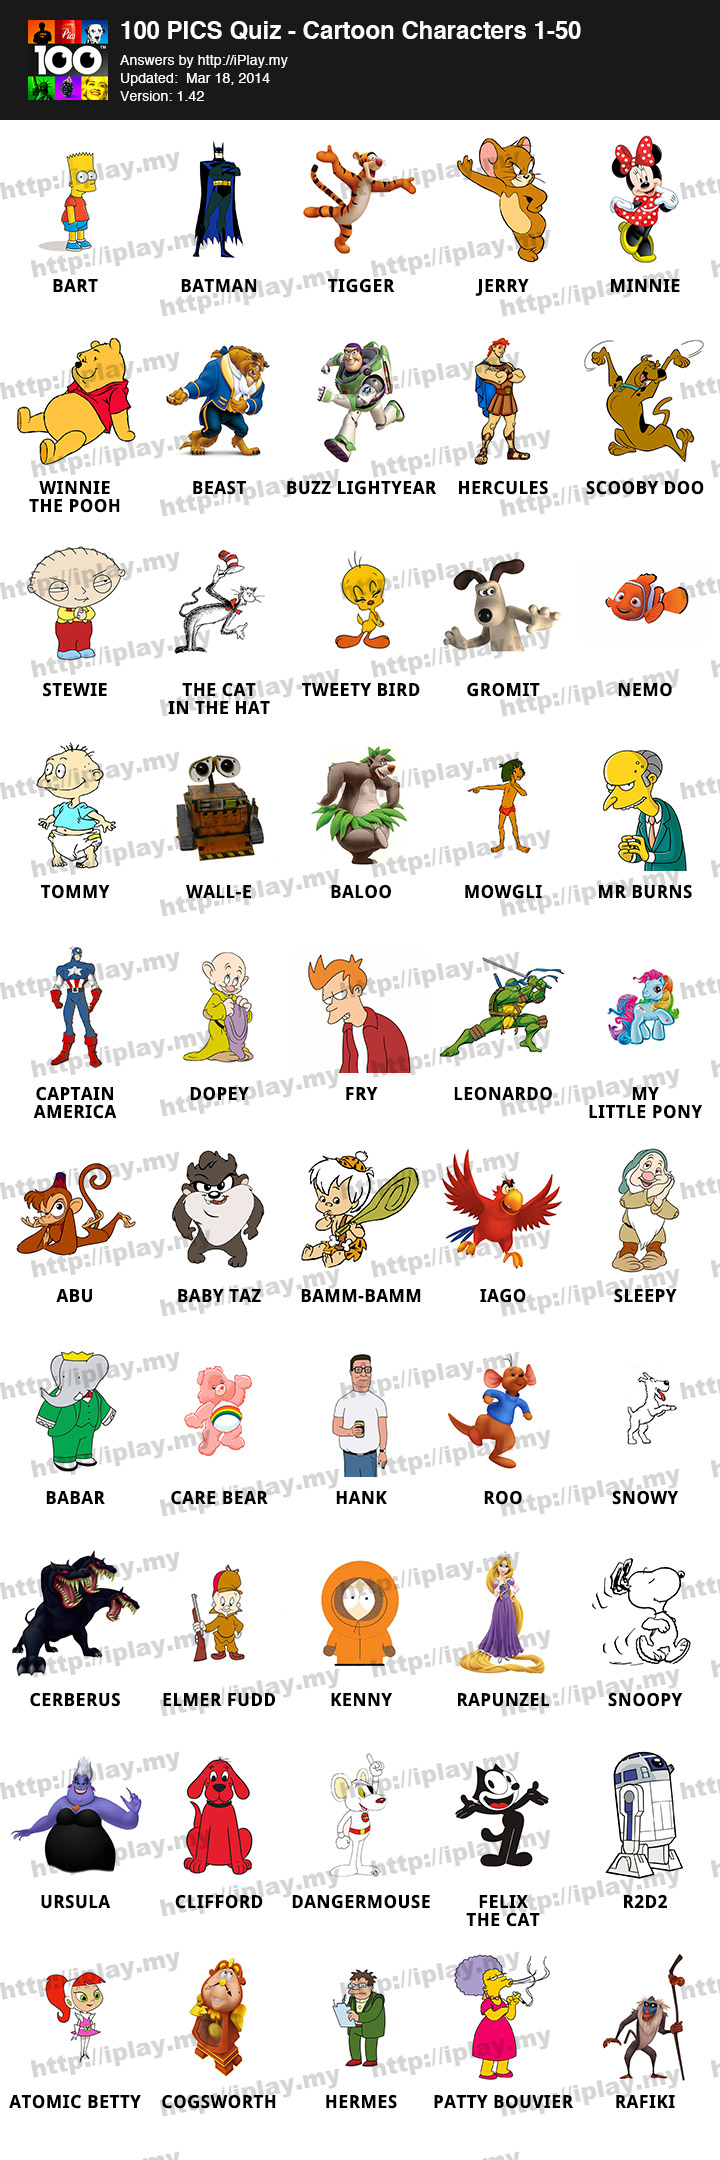 100-Pics-Quiz-Cartoon-Characters-Answers-1-50